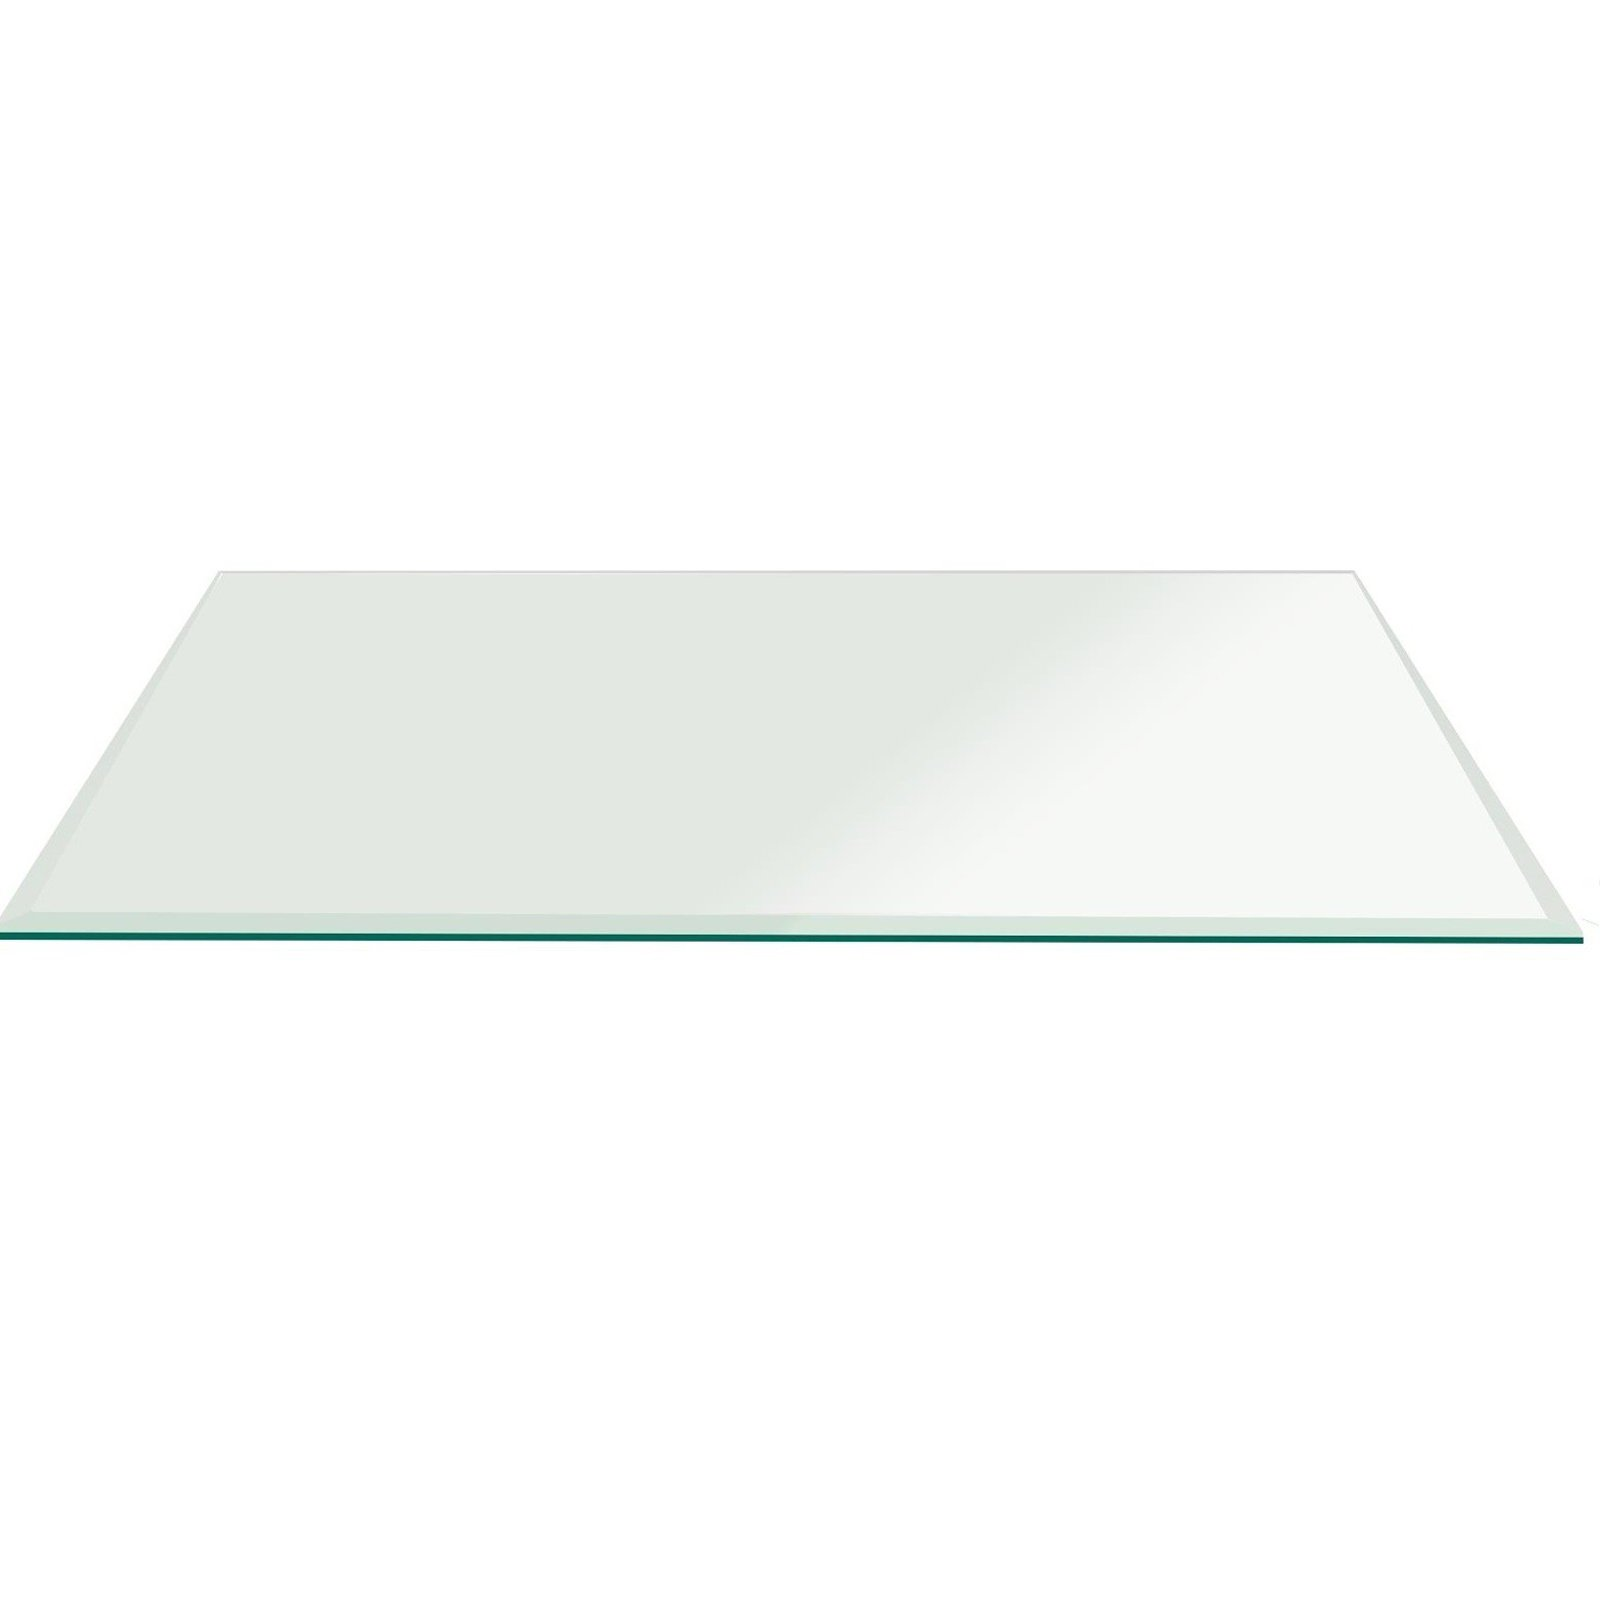 Fab Glass and Mirror Rectangle Glass 1/2'' Thick, Beveled Tempered Radius Corners, 42'' L x 60'' W